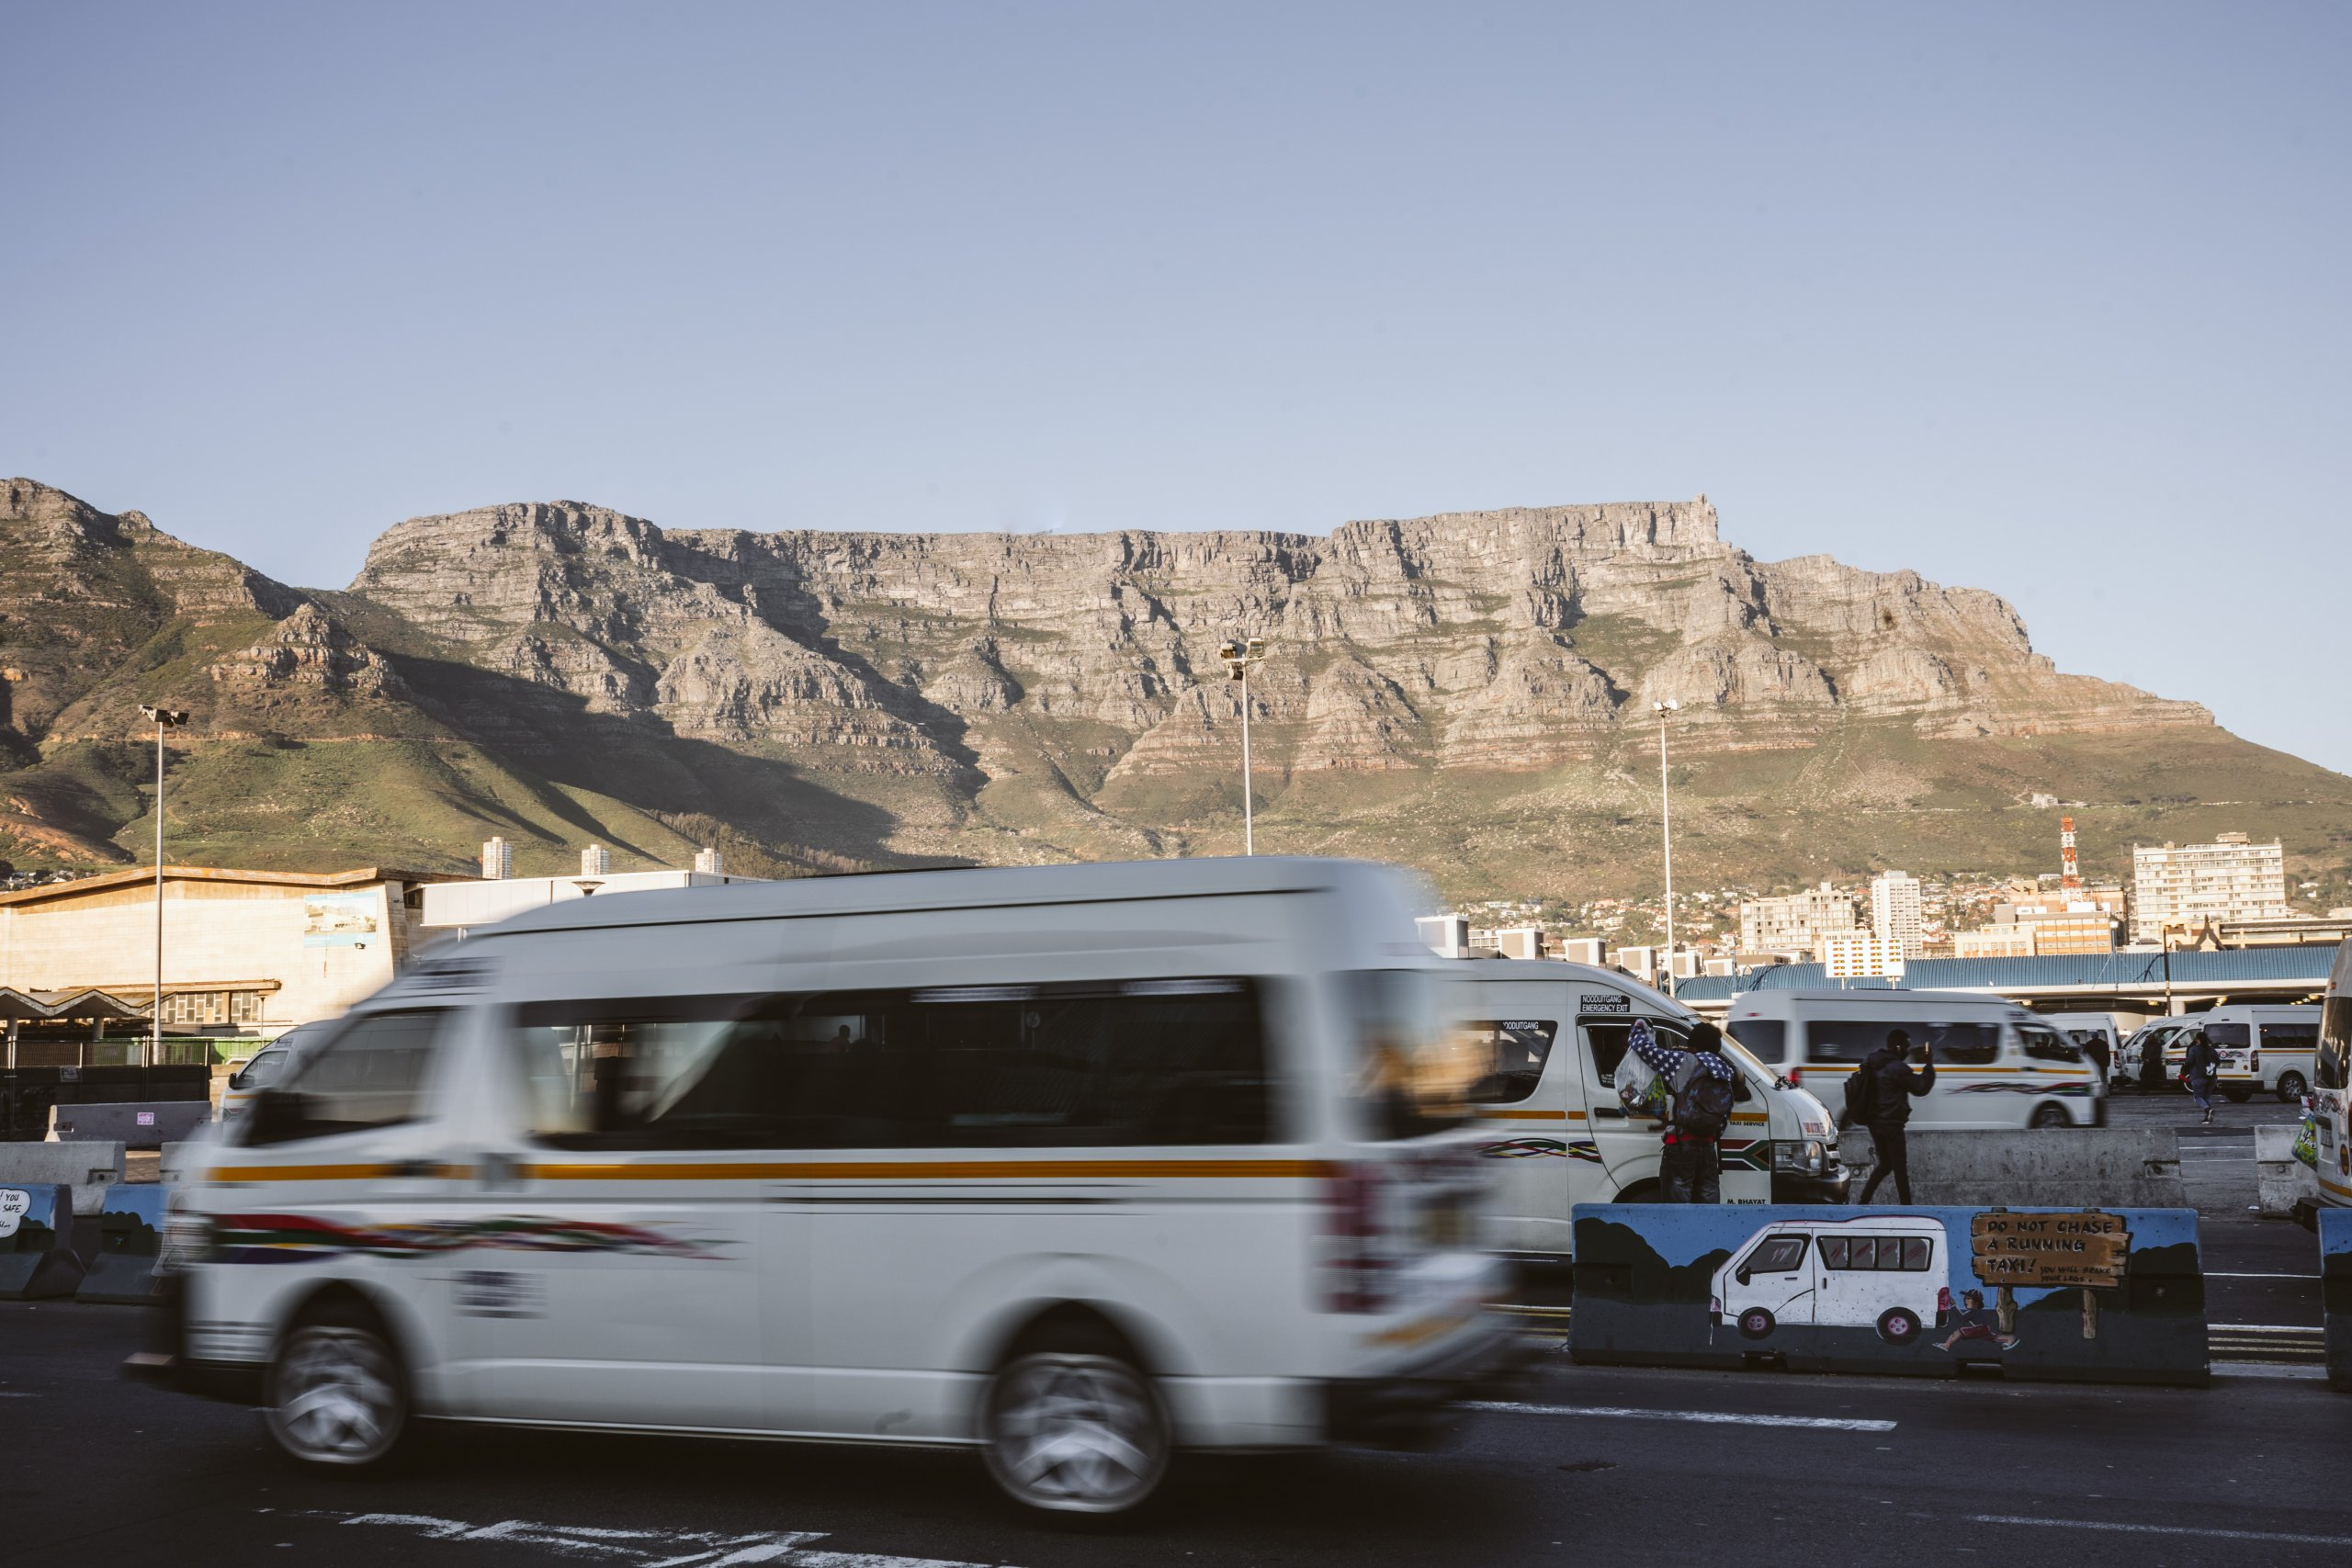 Post lockdown travel demand in South Africa – three plausible futures to prepare for